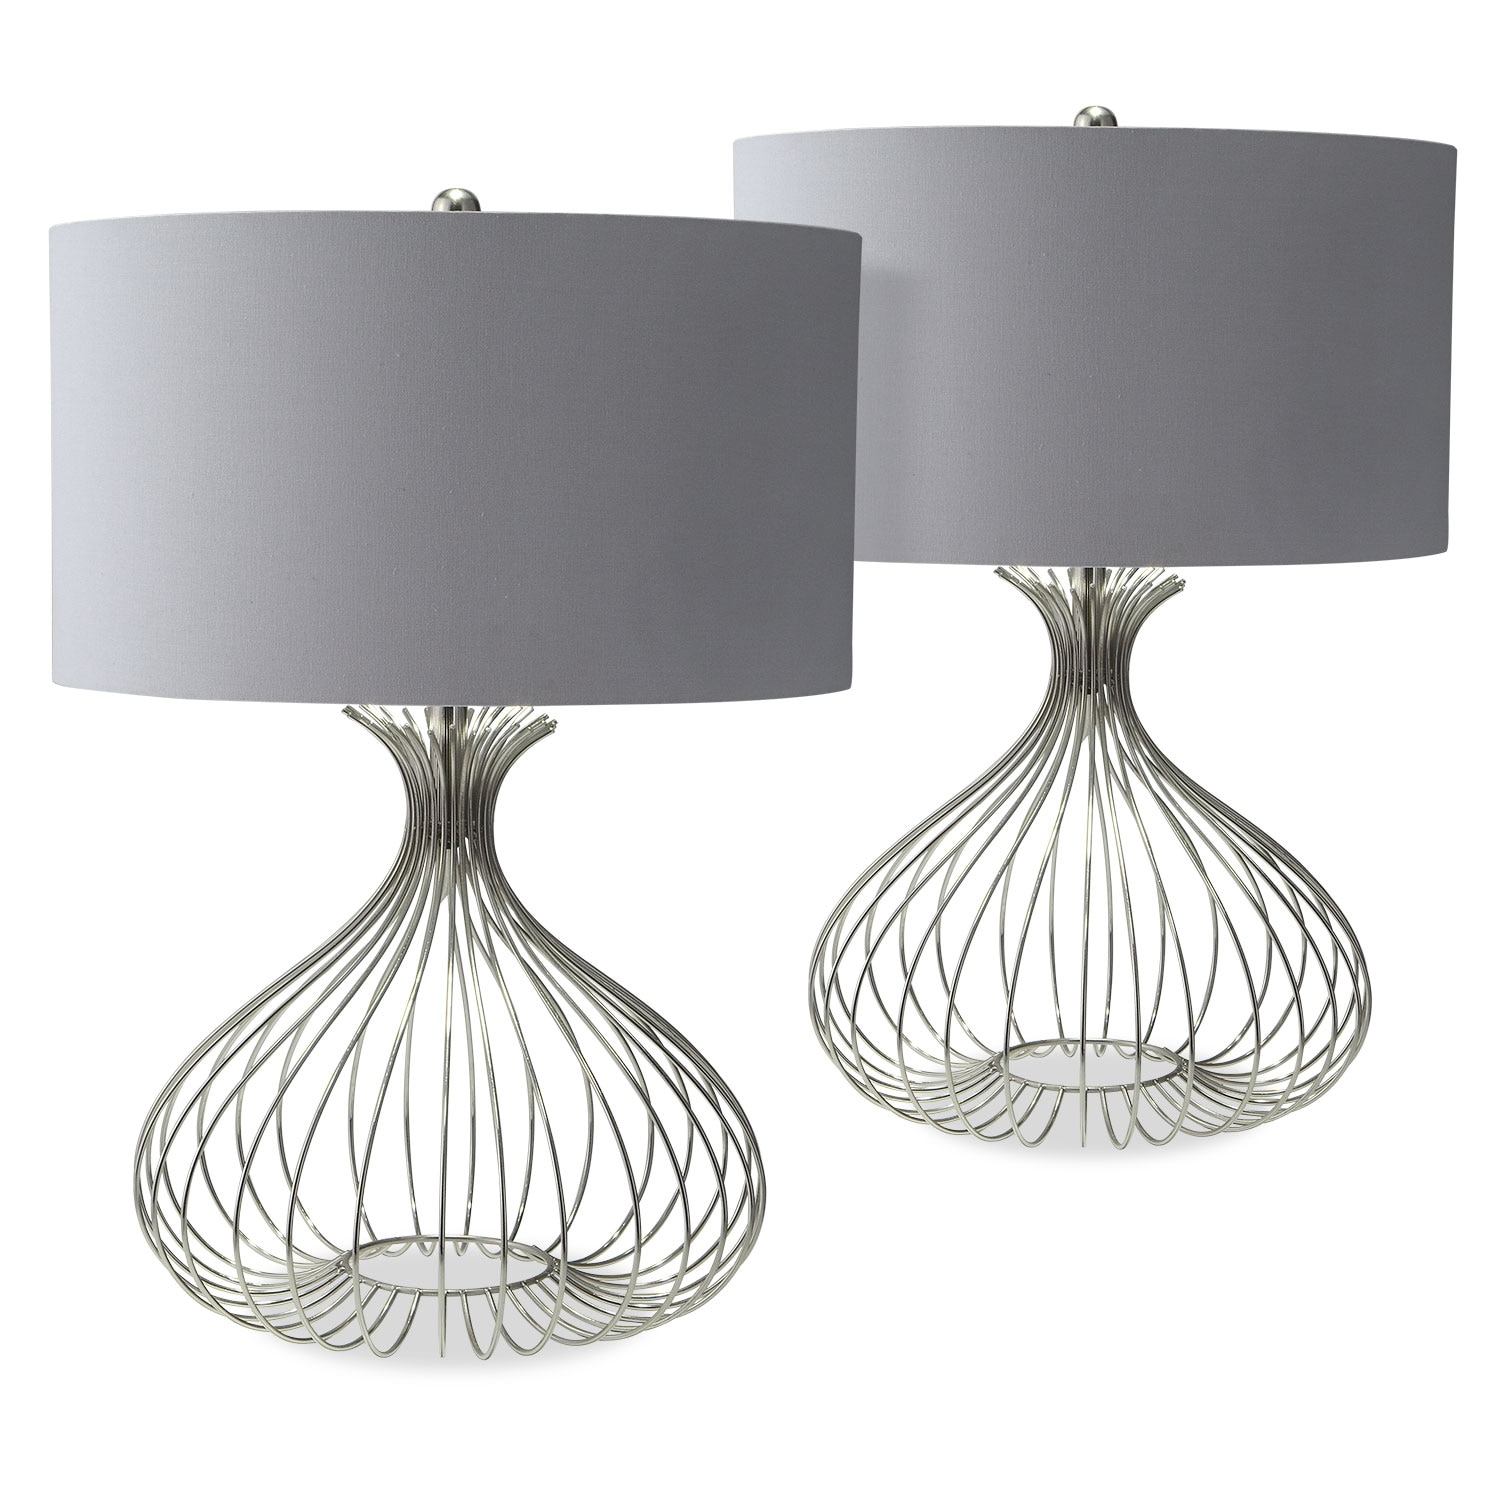 Home Accessories - Nickel Wire 2-Pack Table Lamps